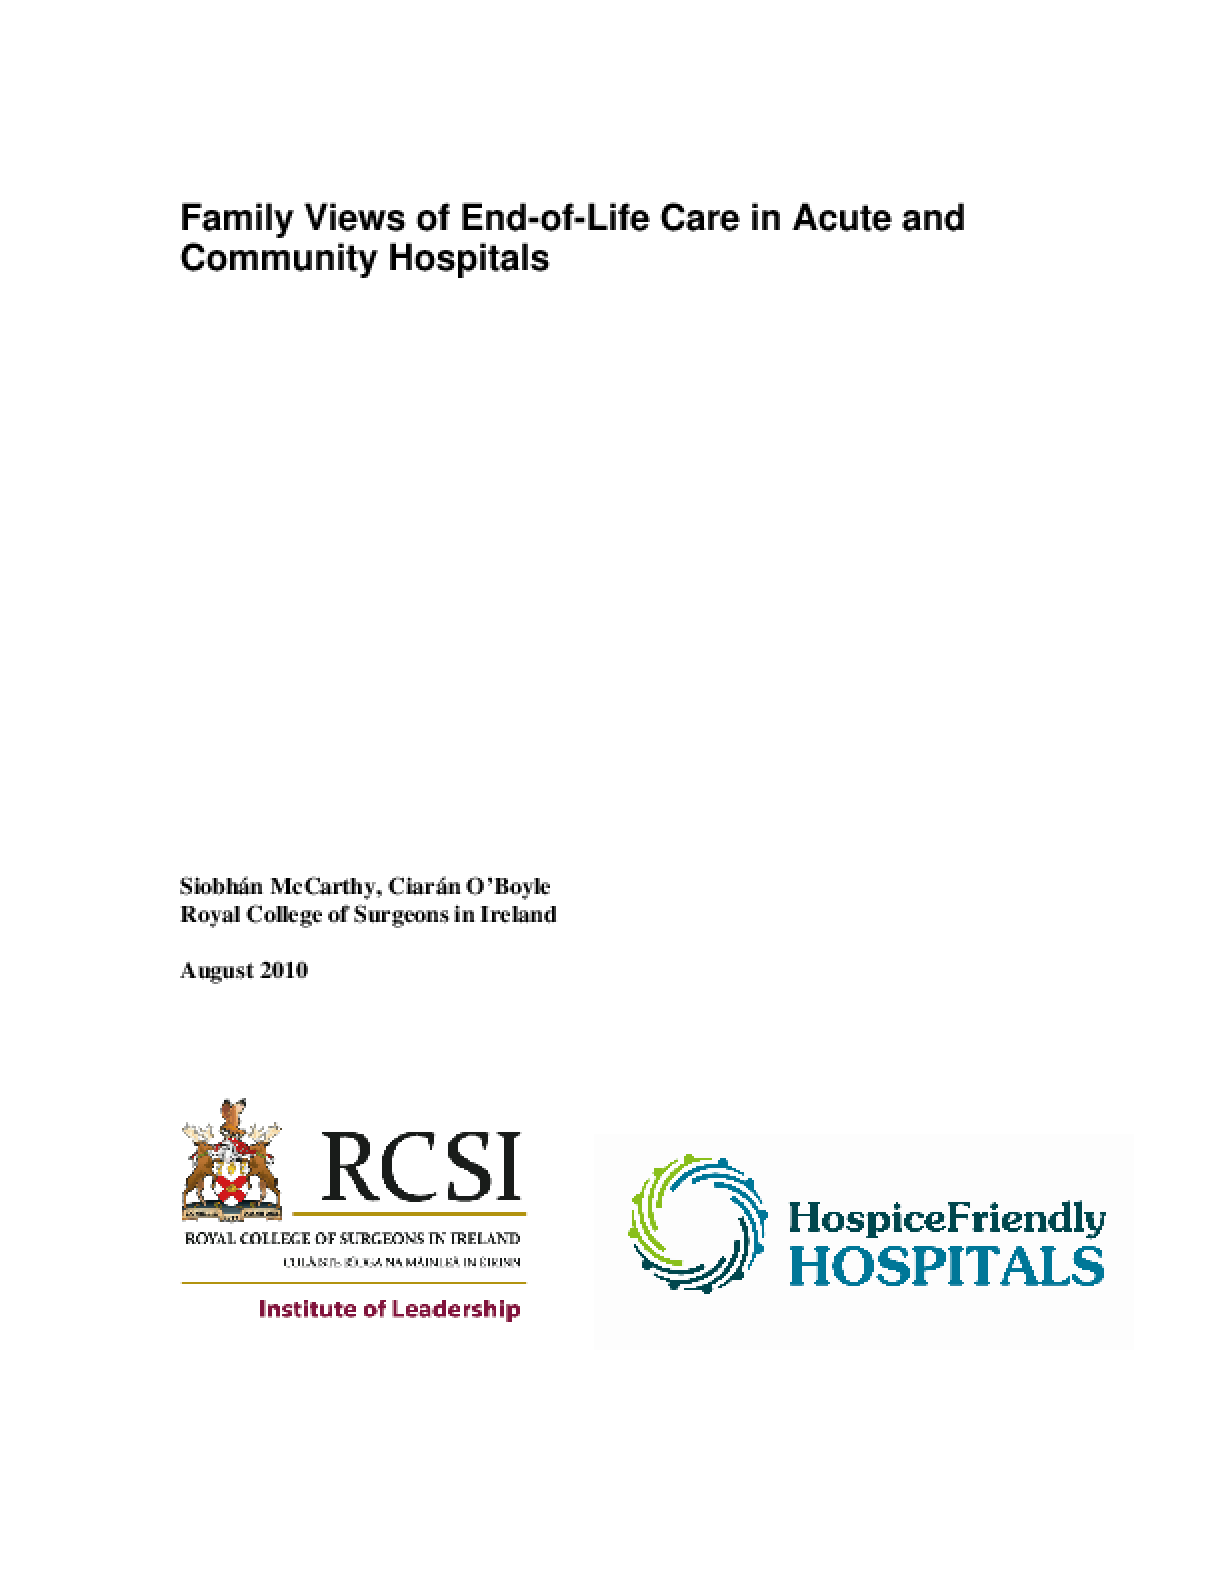 Family Views of End-of-Life Care in Acute and Community Hospitals